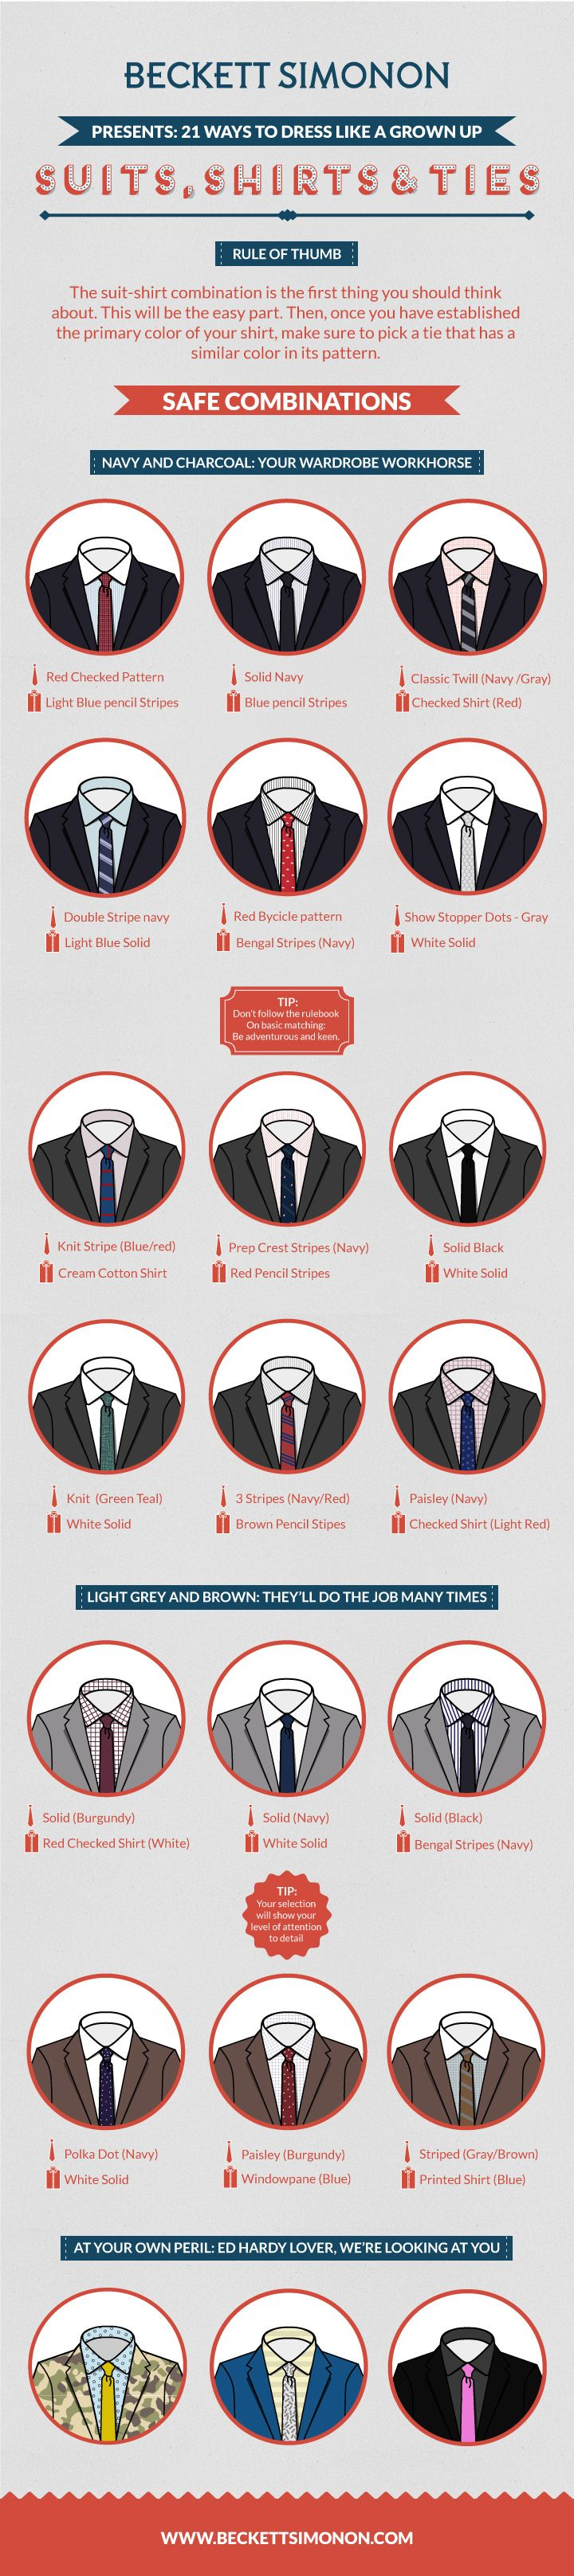 How to match suits, shirts and ties like a pro.